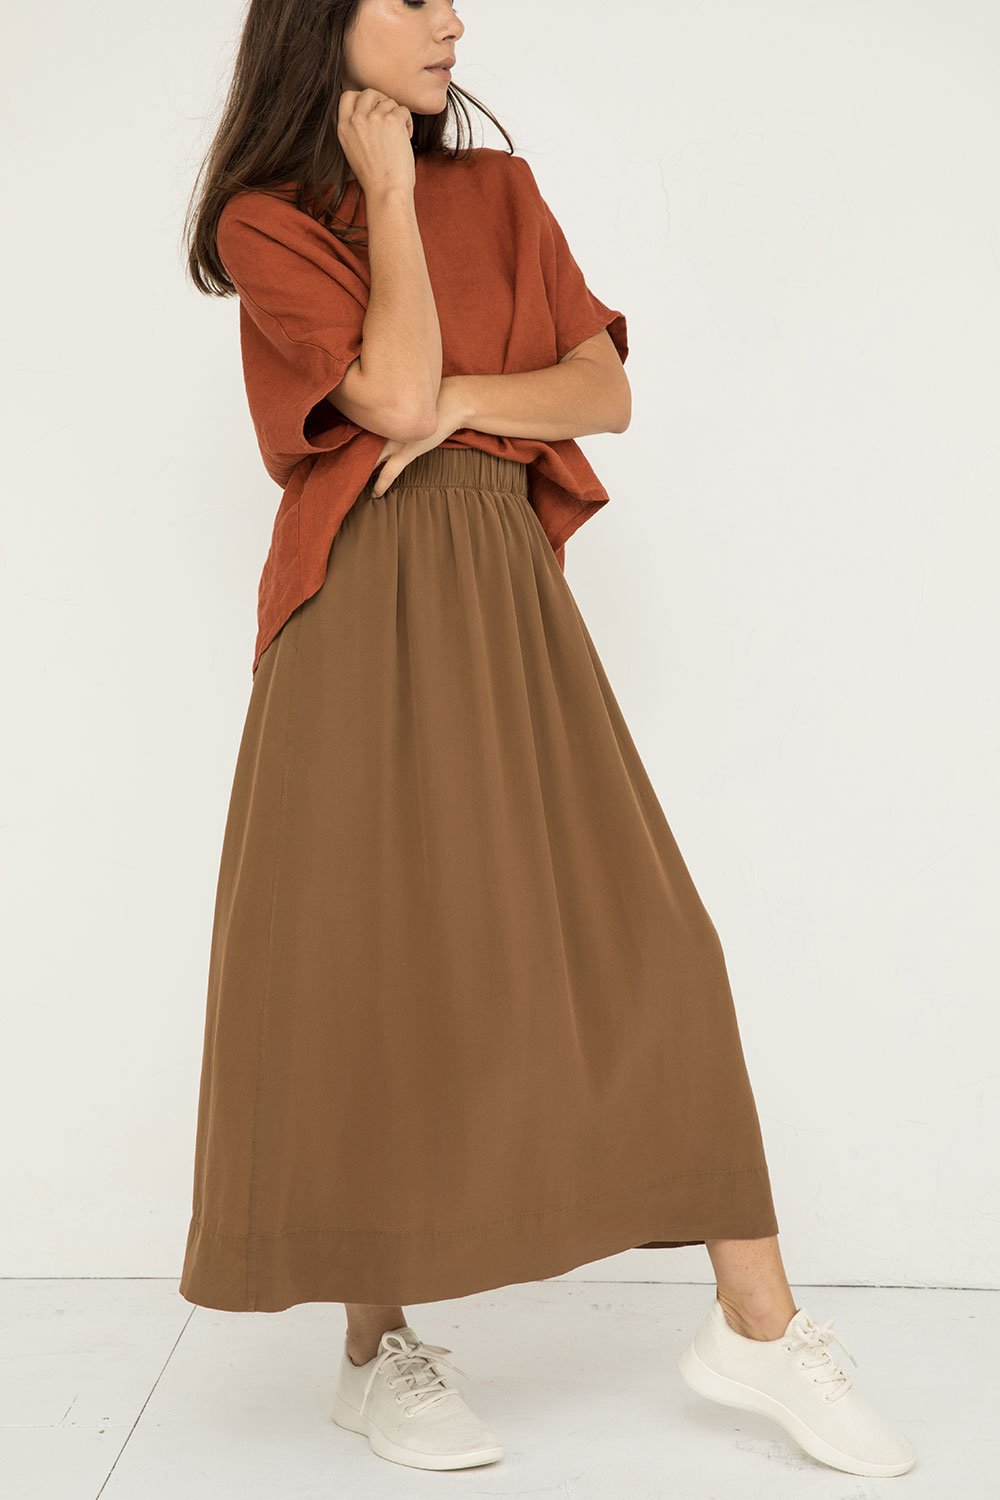 Bel Skirt in Silk Crepe Moss - Molly-XS Short